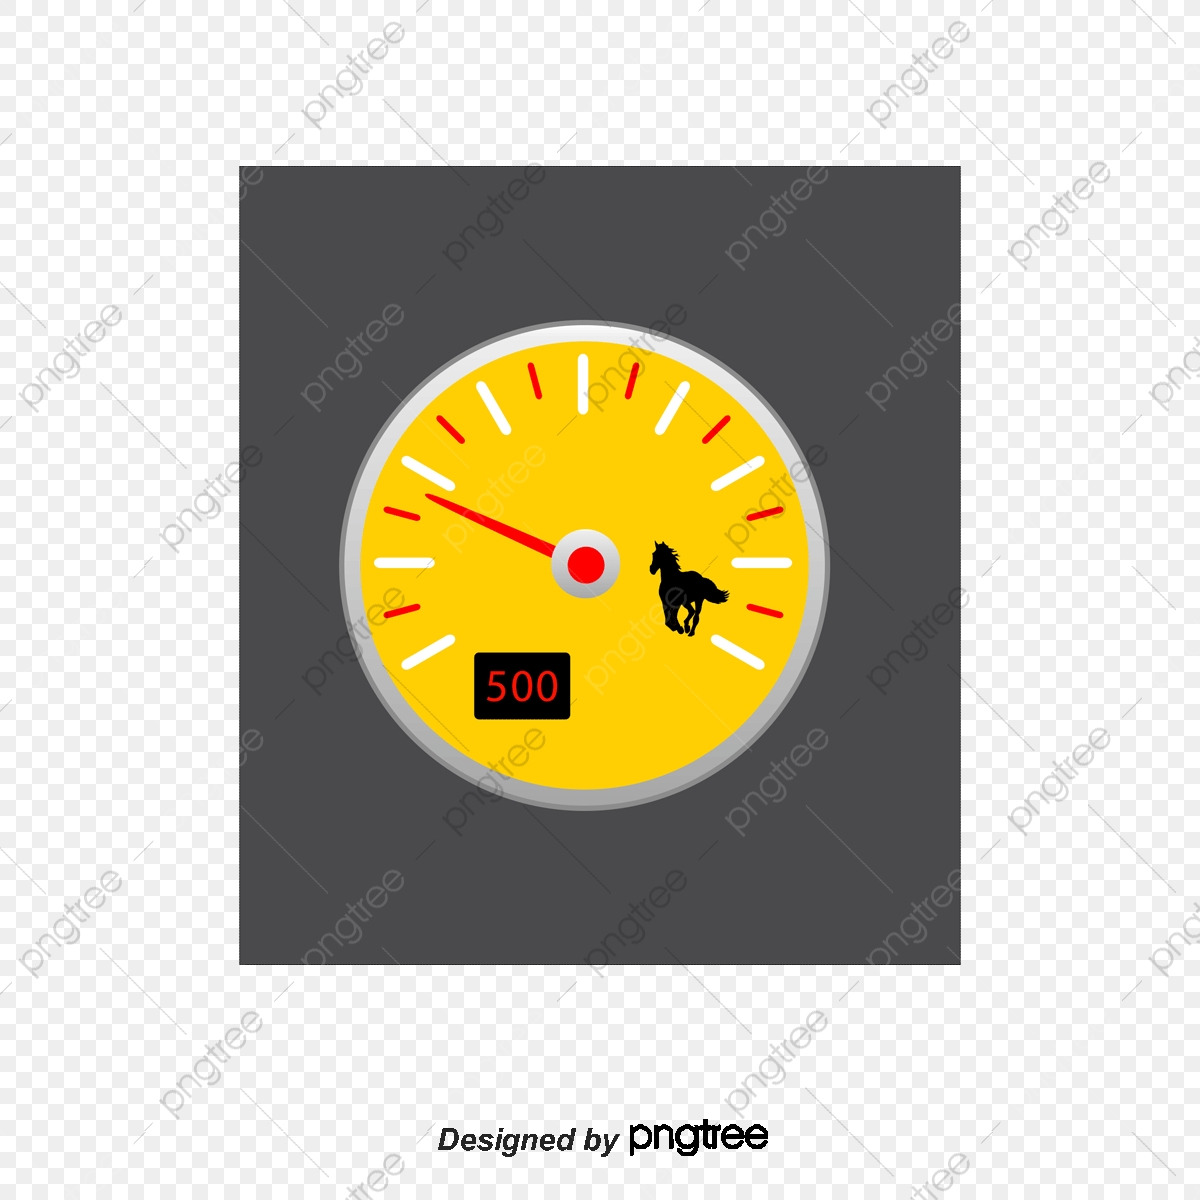 Ferrari Png Images Vector And Psd Files Free Download On Pngtree